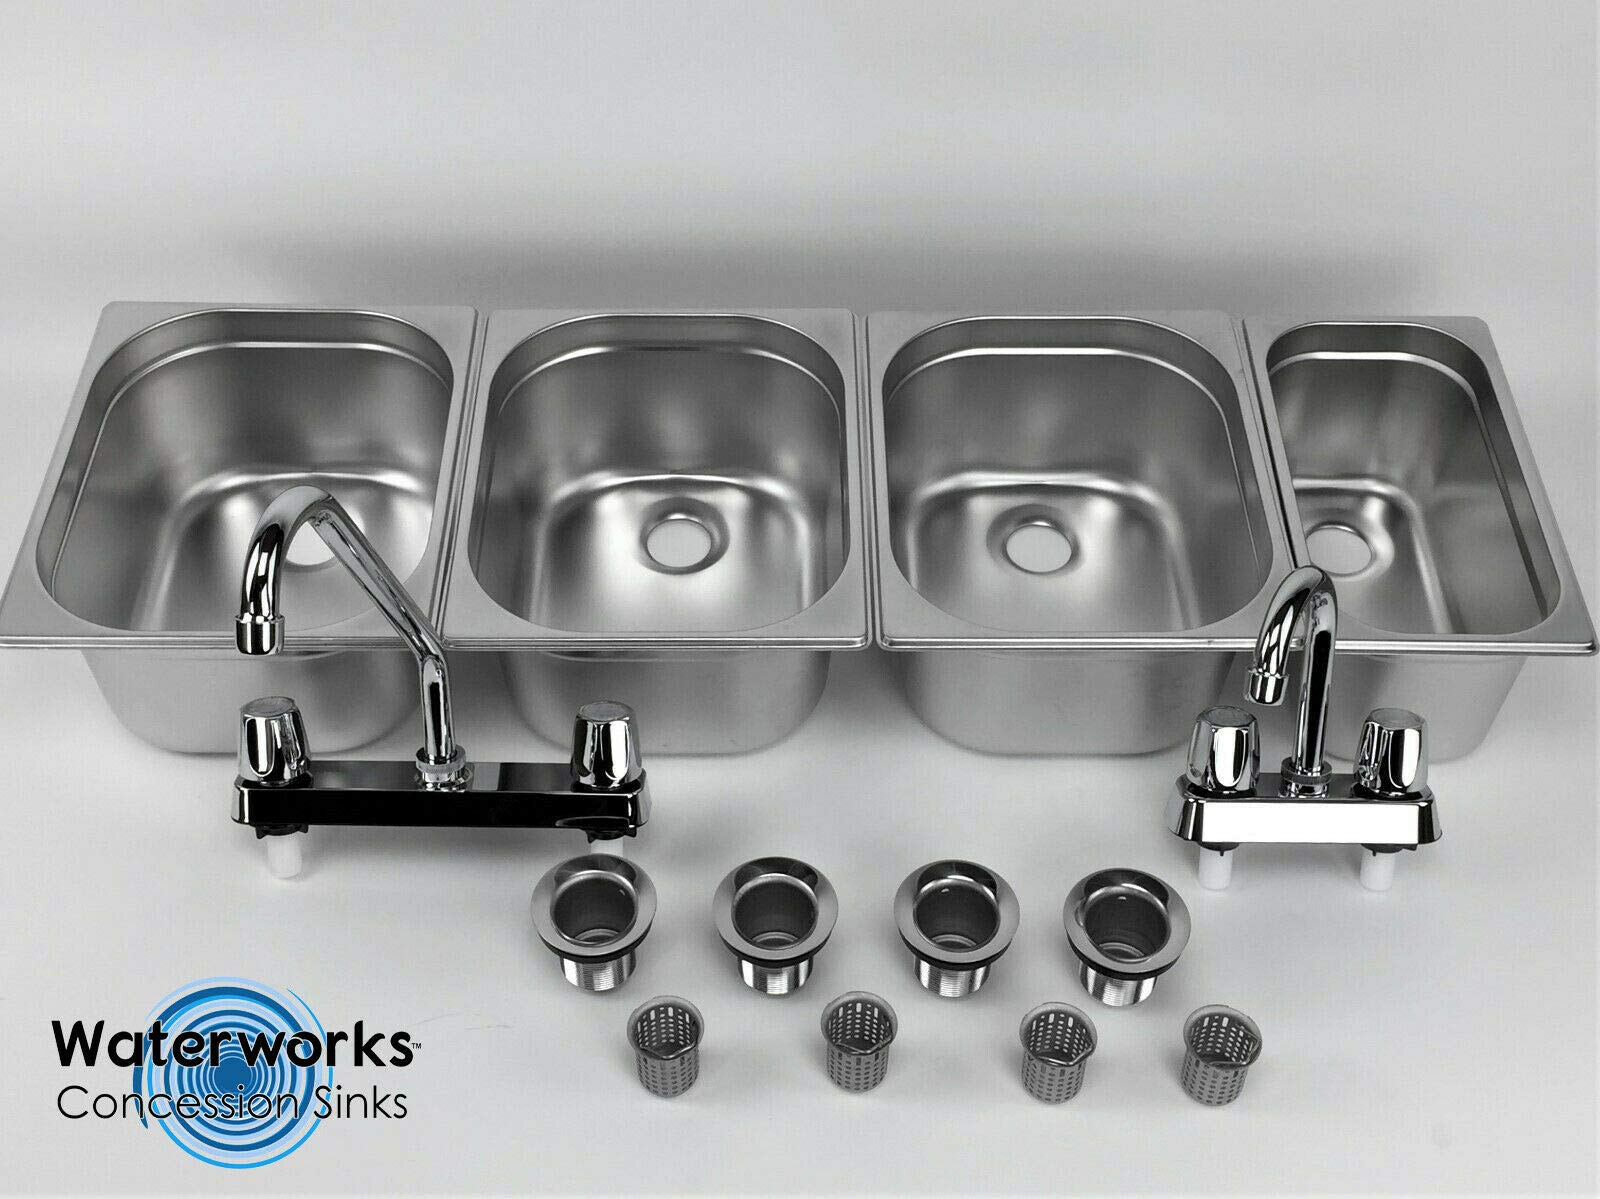 Concession Sink 3 Large + 1 Small Hand Washing- 4 Compartment Stand Food Trailer